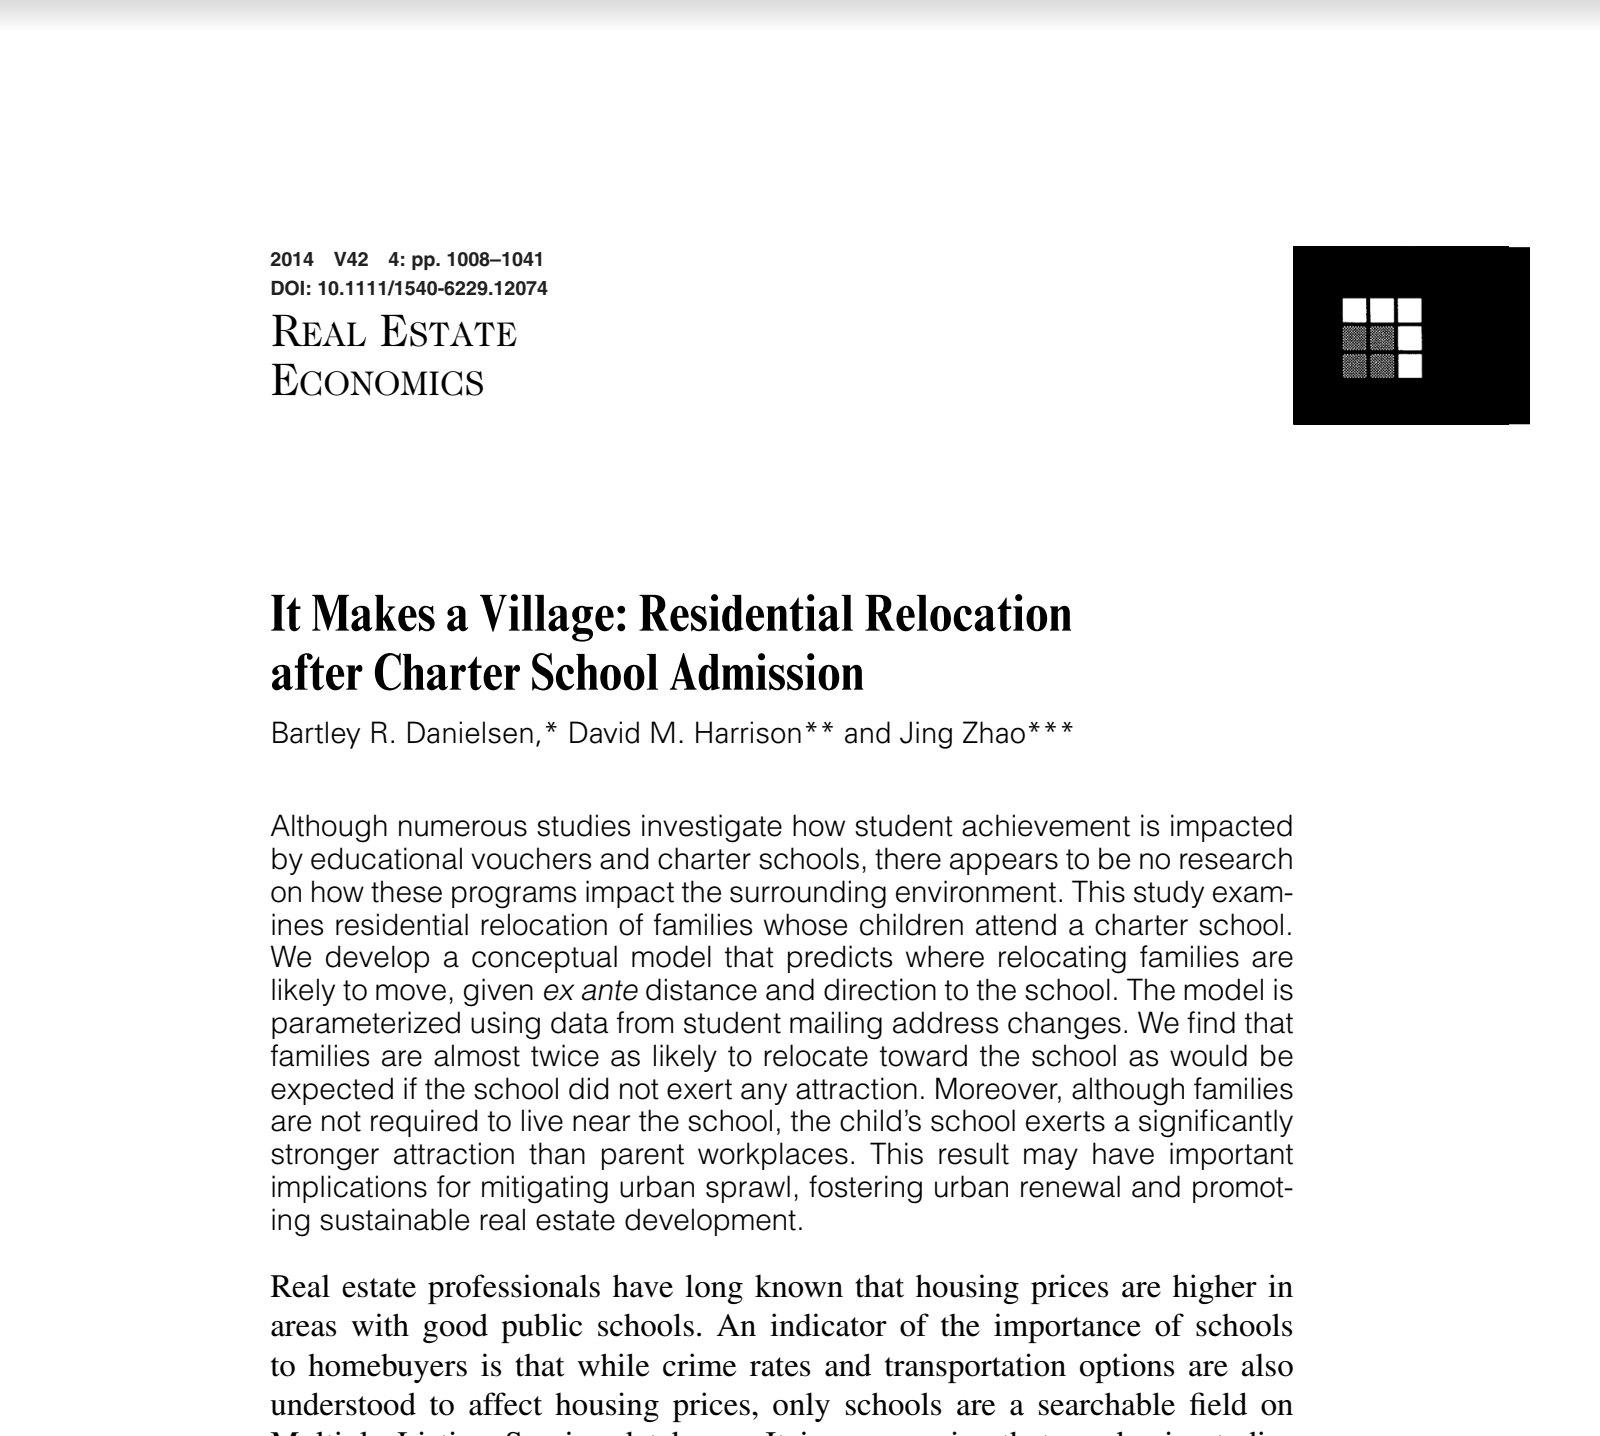 It Makes a Village: Residential Relocation after Charter School Admission